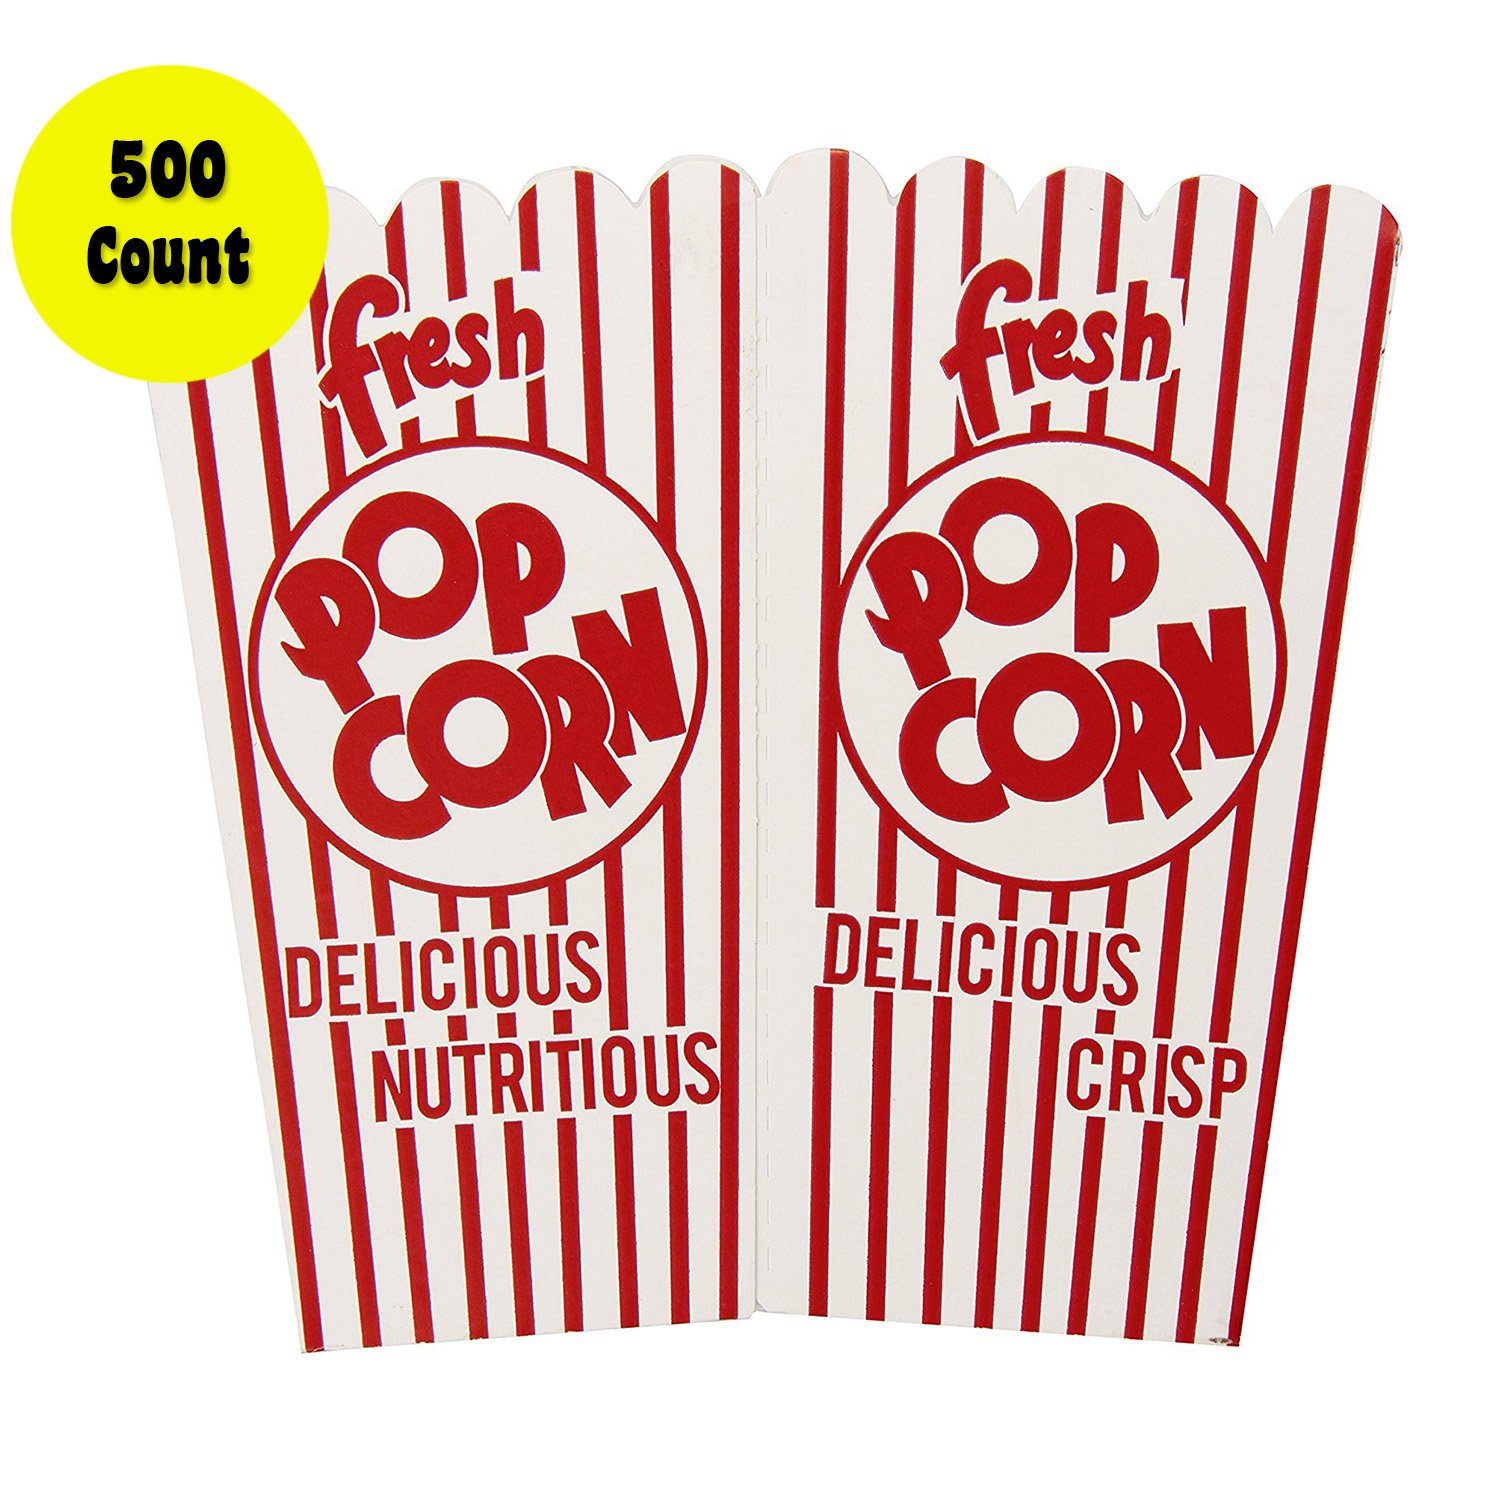 Concession Express 500 Count 44E Open Top Popcorn Scoop Boxes (500 Pack) by Concession Express (Image #1)